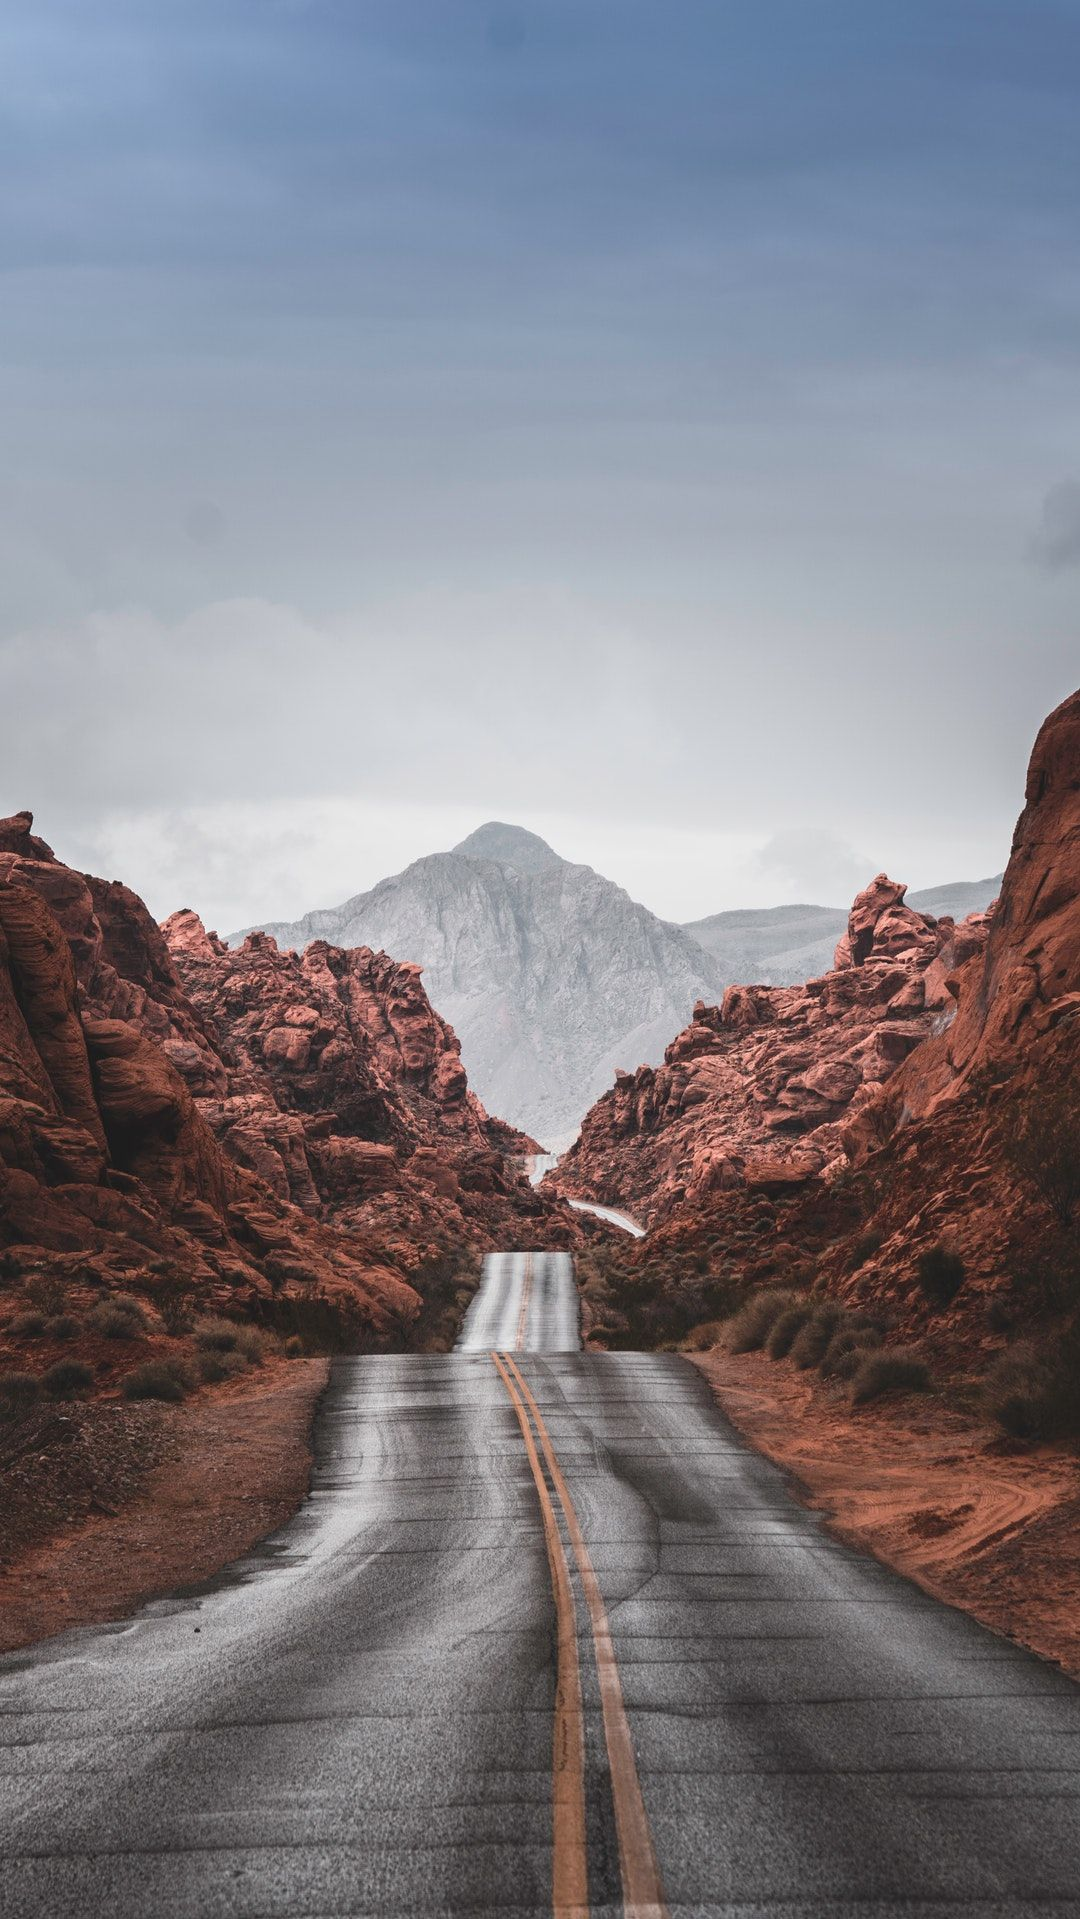 Road Mountain Nature And Outdoors Hd Photo By Steven Ha Stevenhah On Unsplash Iphone Wallpaper Usa Road Trip Usa Nevada Travel